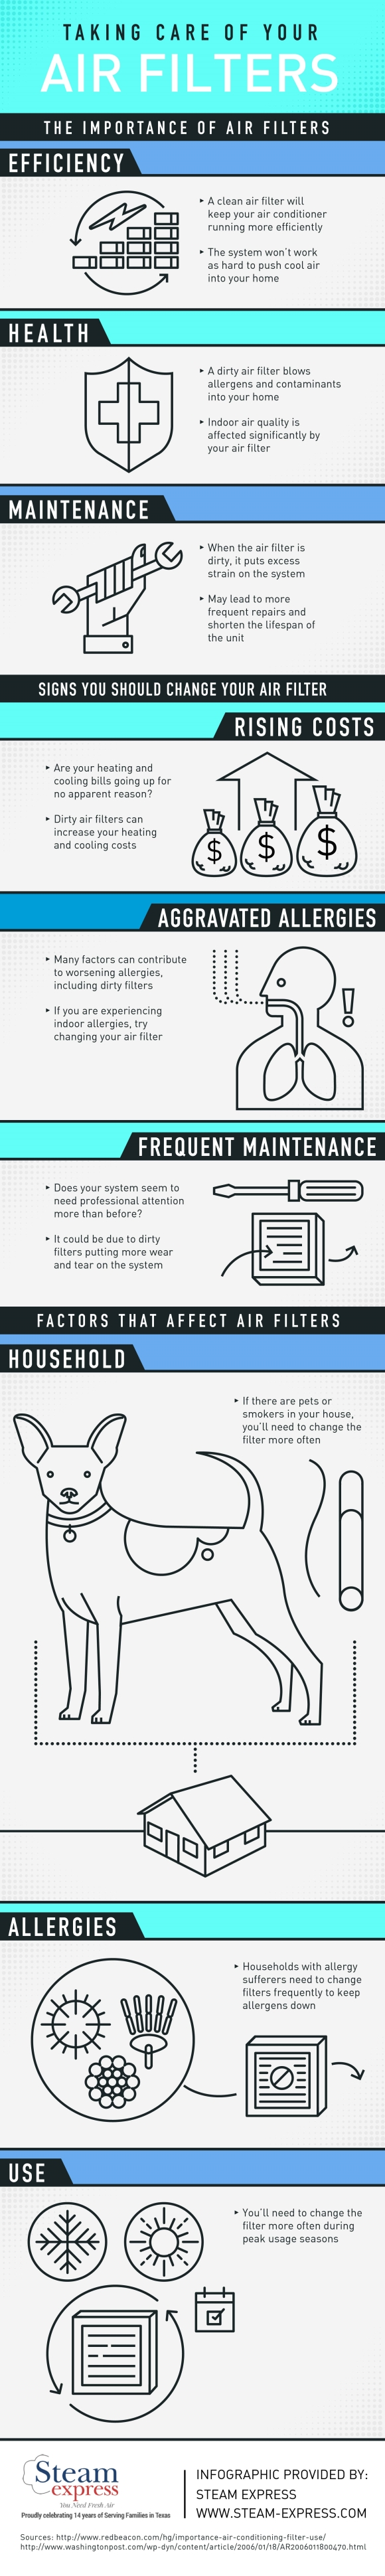 Changing your air filter can help your air conditioner run